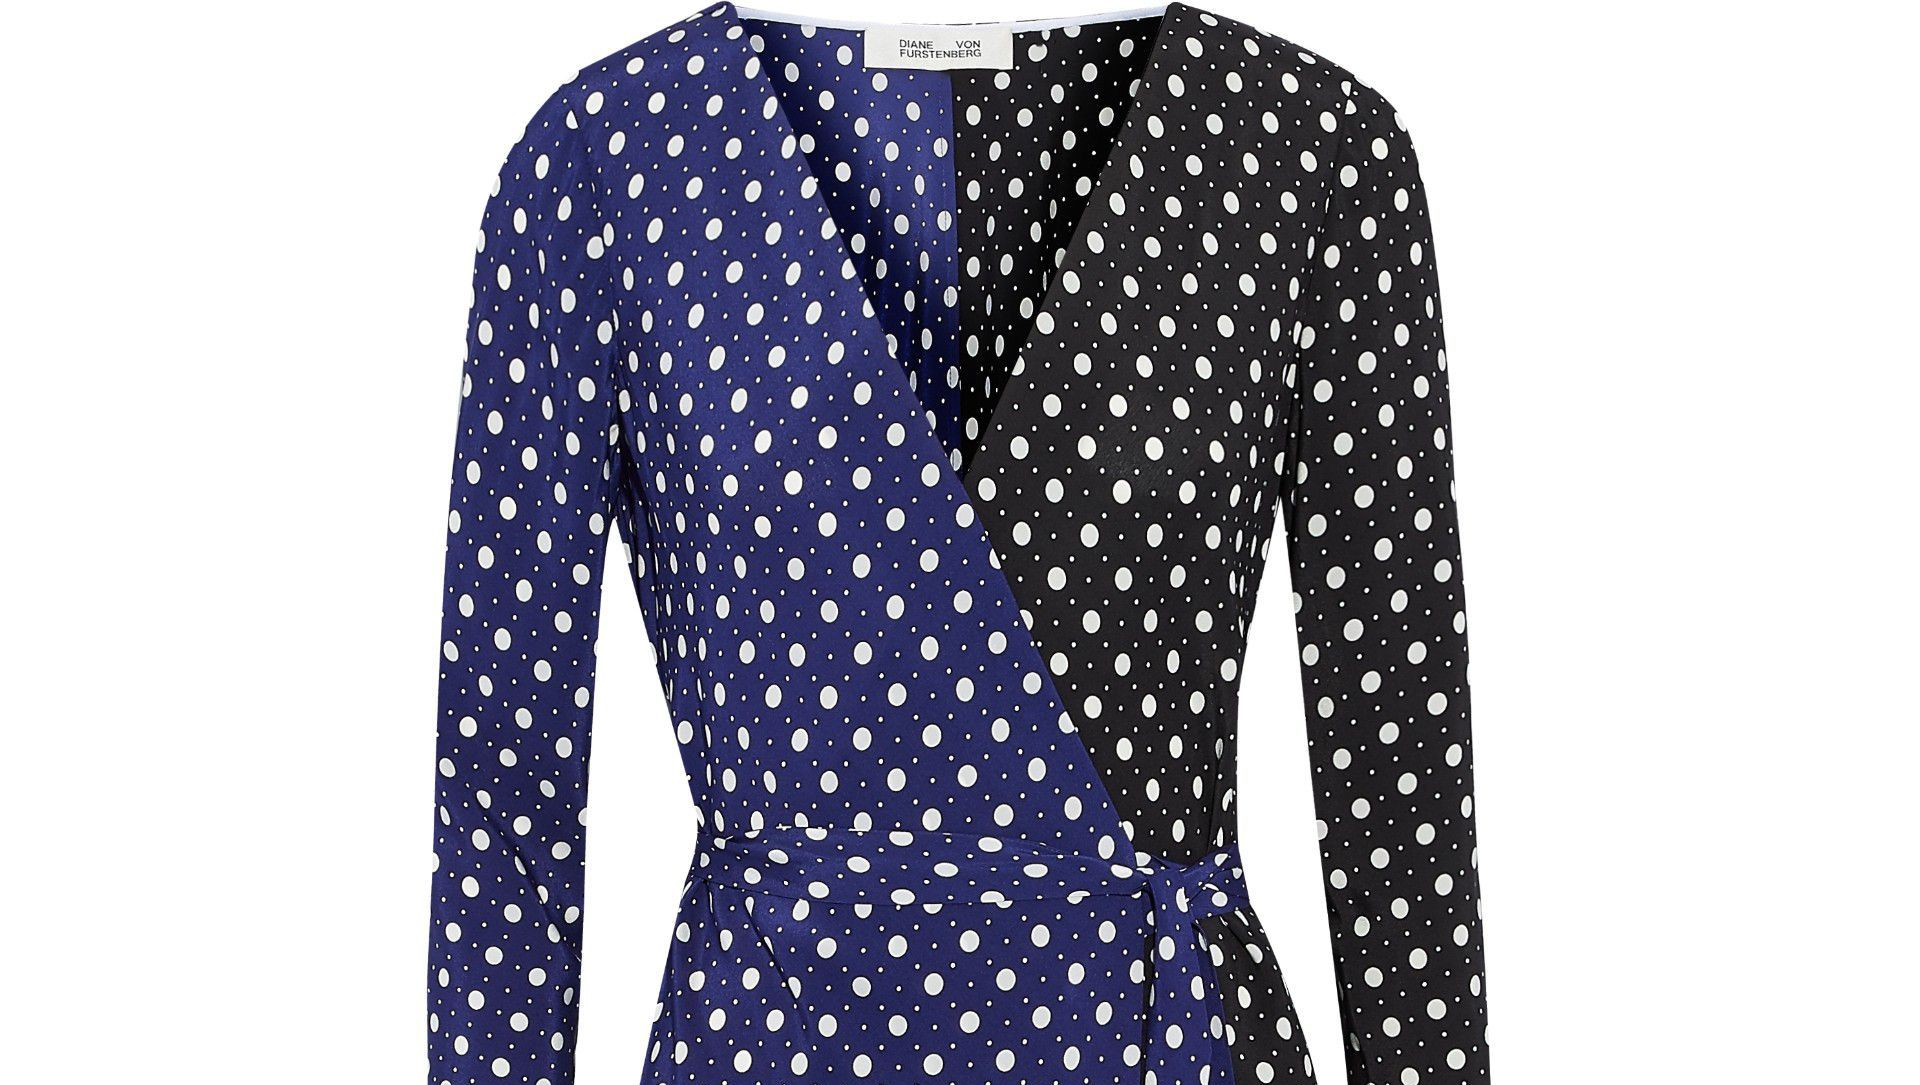 Diane von Furstenberg on sale Outnet